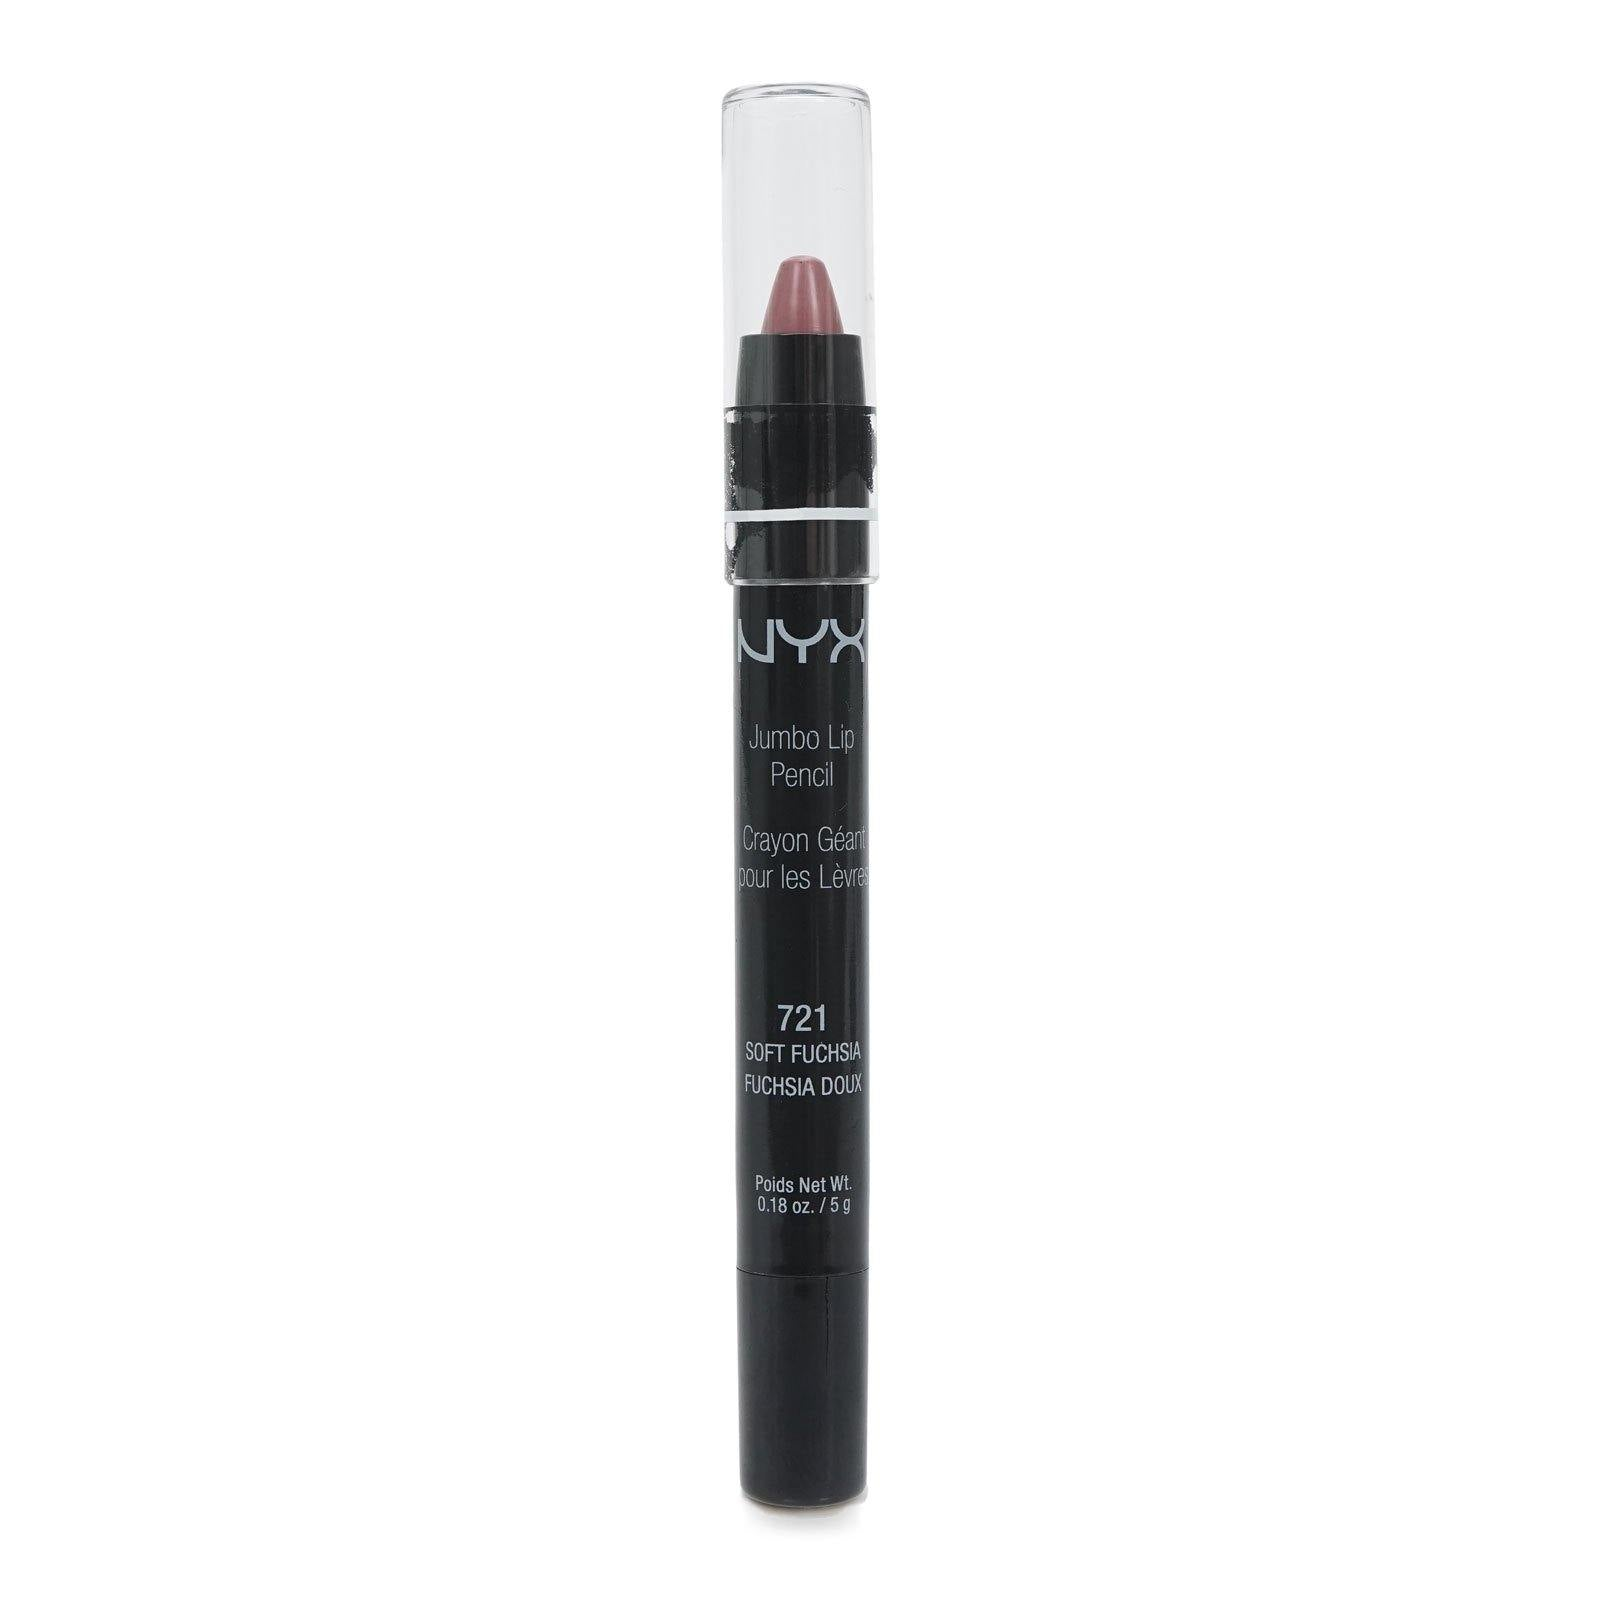 NYX JUMBO LIP PENCIL - SOFT FUCHSIA #21 (24/cs)